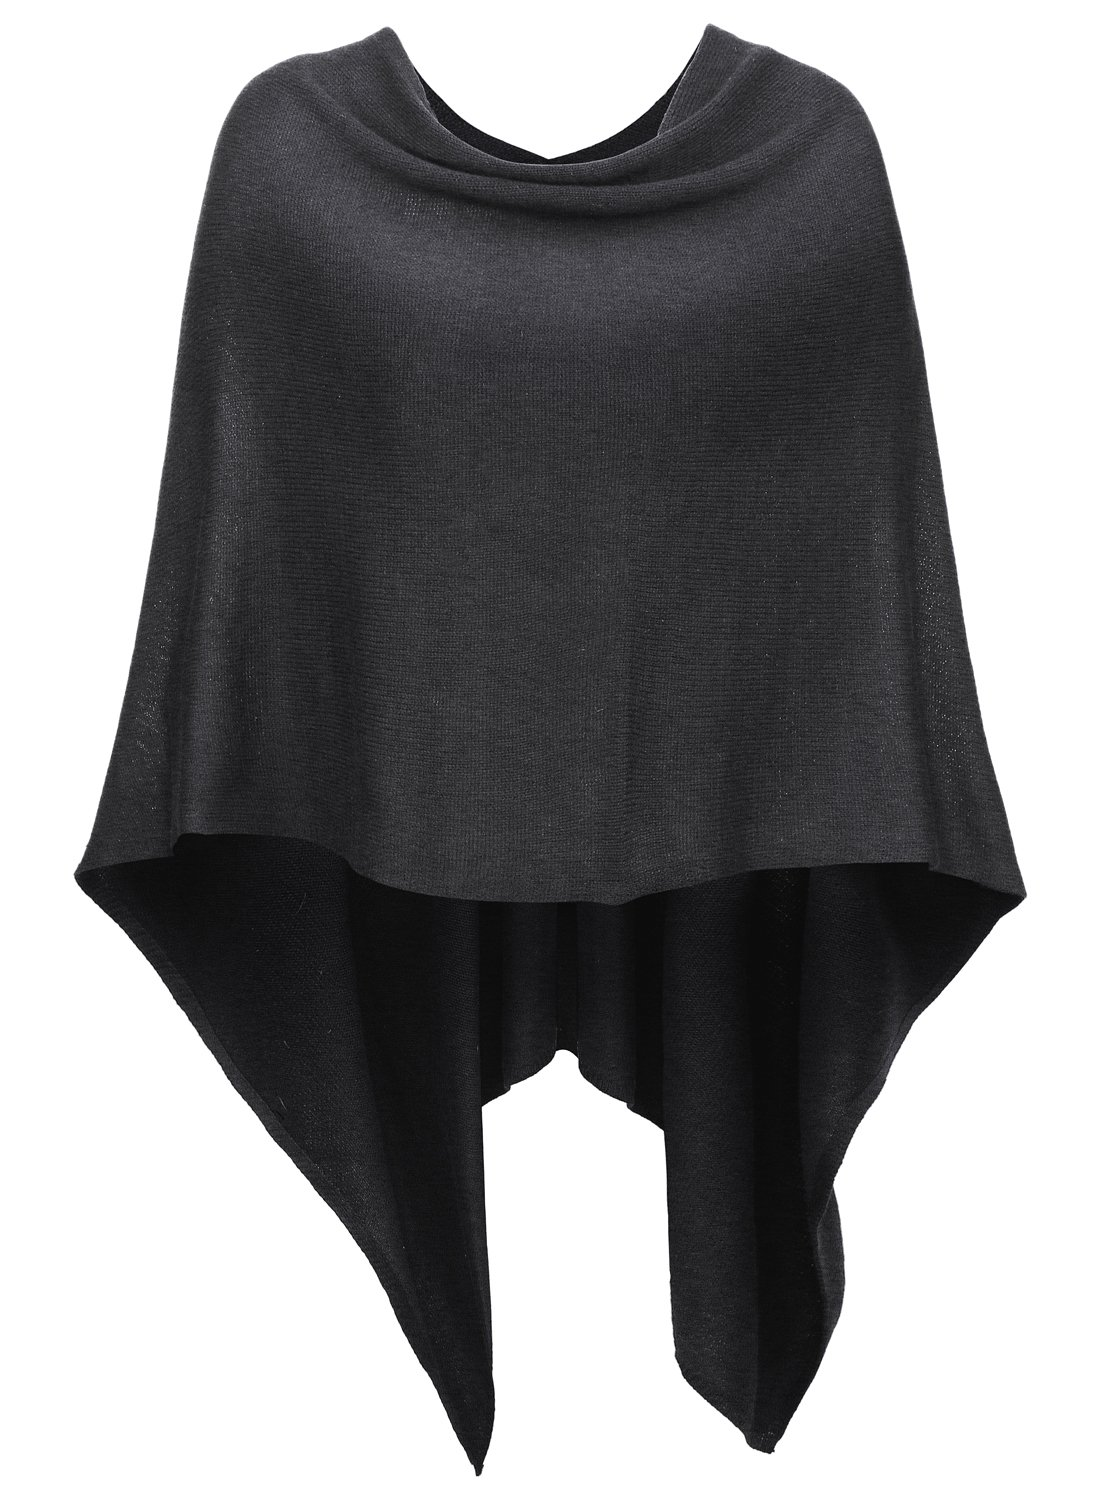 WOMENS KNITTED ASYMMETRICAL LARGE COLLAR 3 BUTTON PLAIN LOT LADIES PONCHO CAPE